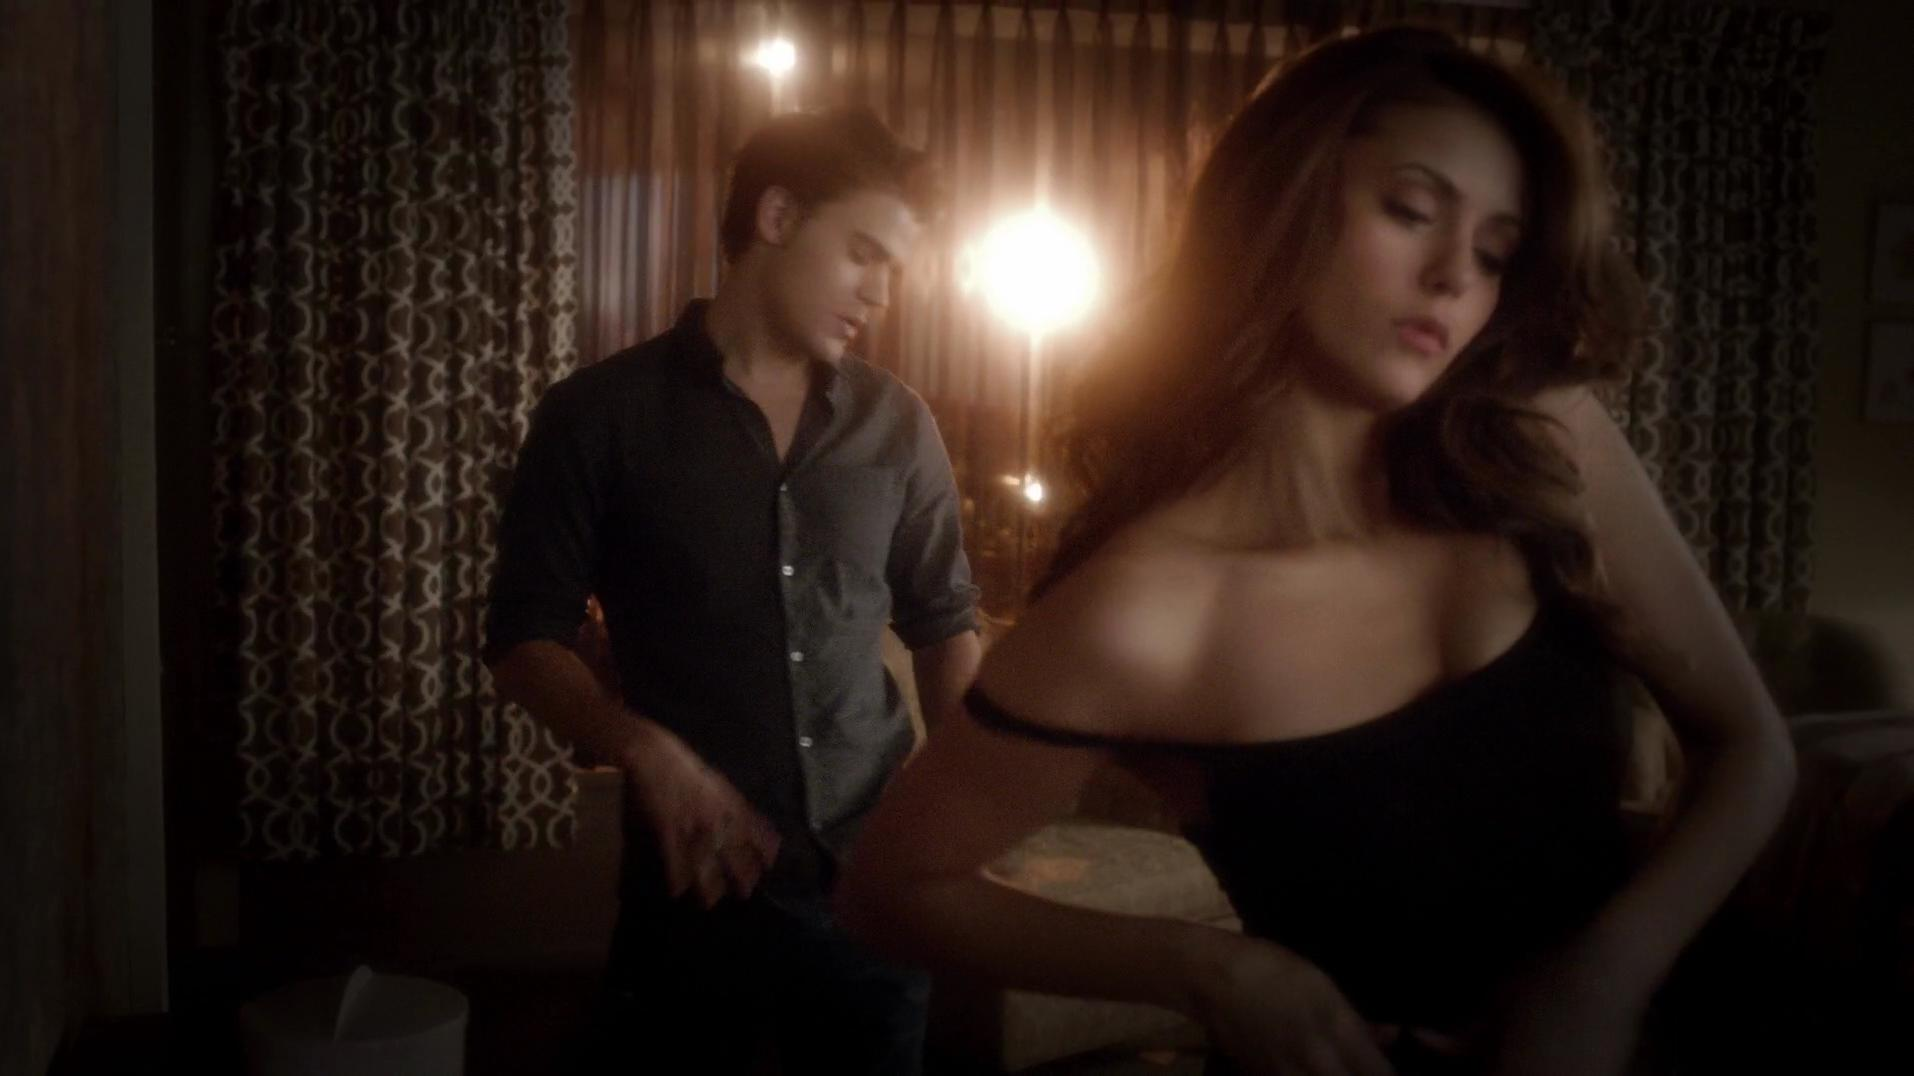 Nina Dobrev sexy - The Vampire Diaries s05e16 (2014)